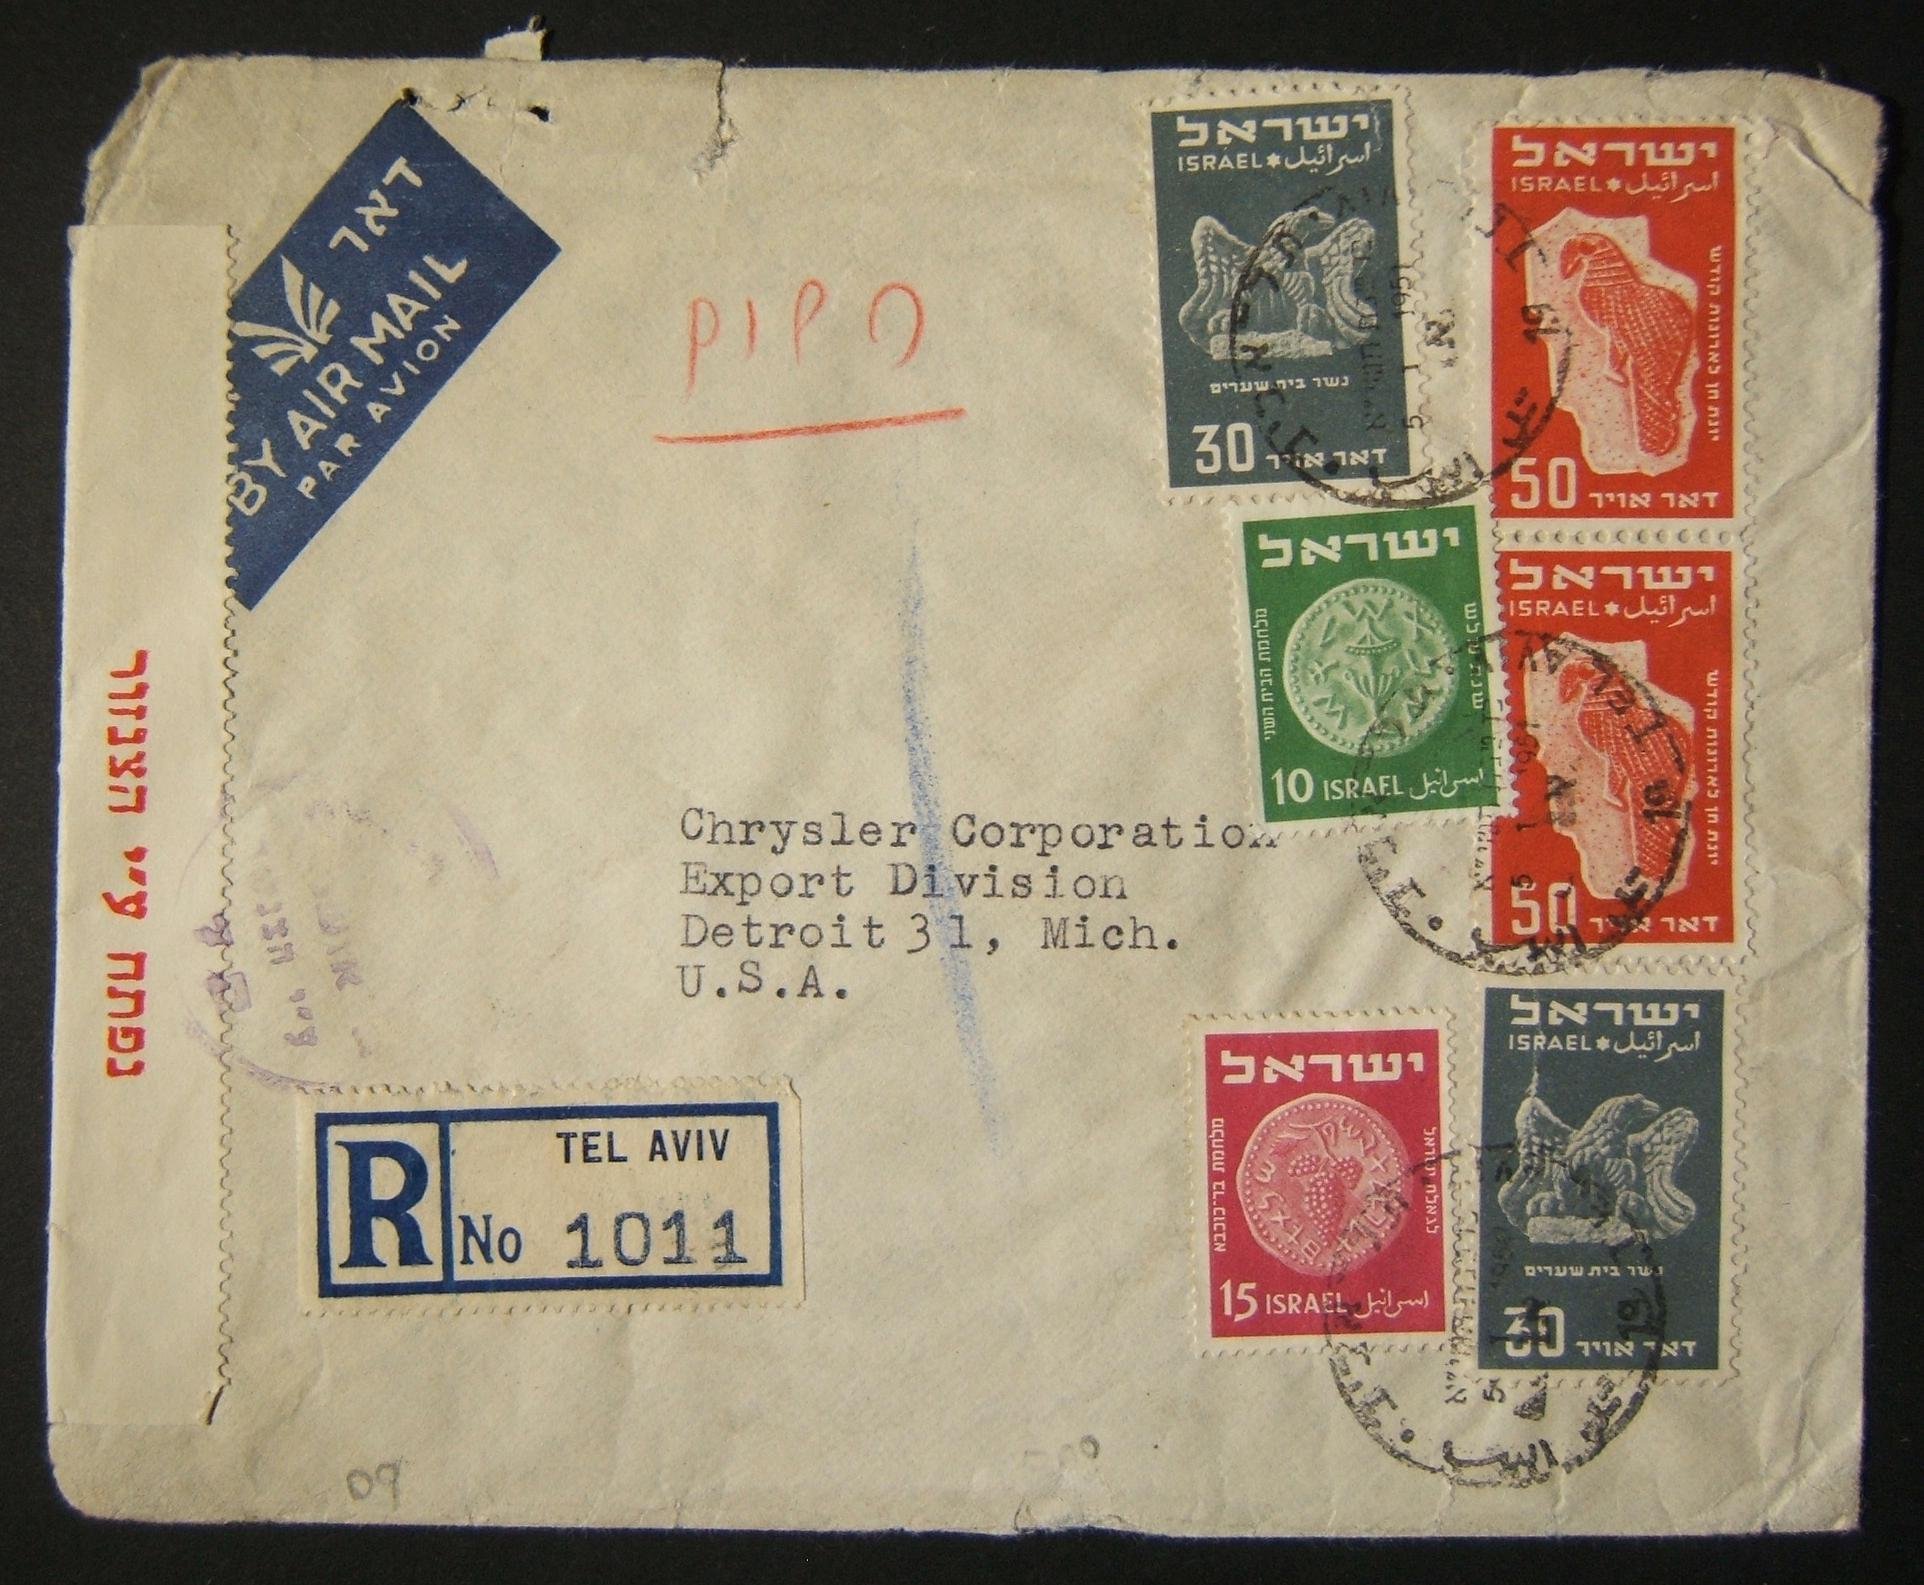 1950 1st airmail / PO's, rates & routes: 5-1-1951 registered Israeli business airmail stationary commercial cover ex TLV to DETROIT franked 185pr at the FA-2a period rate (80pr let